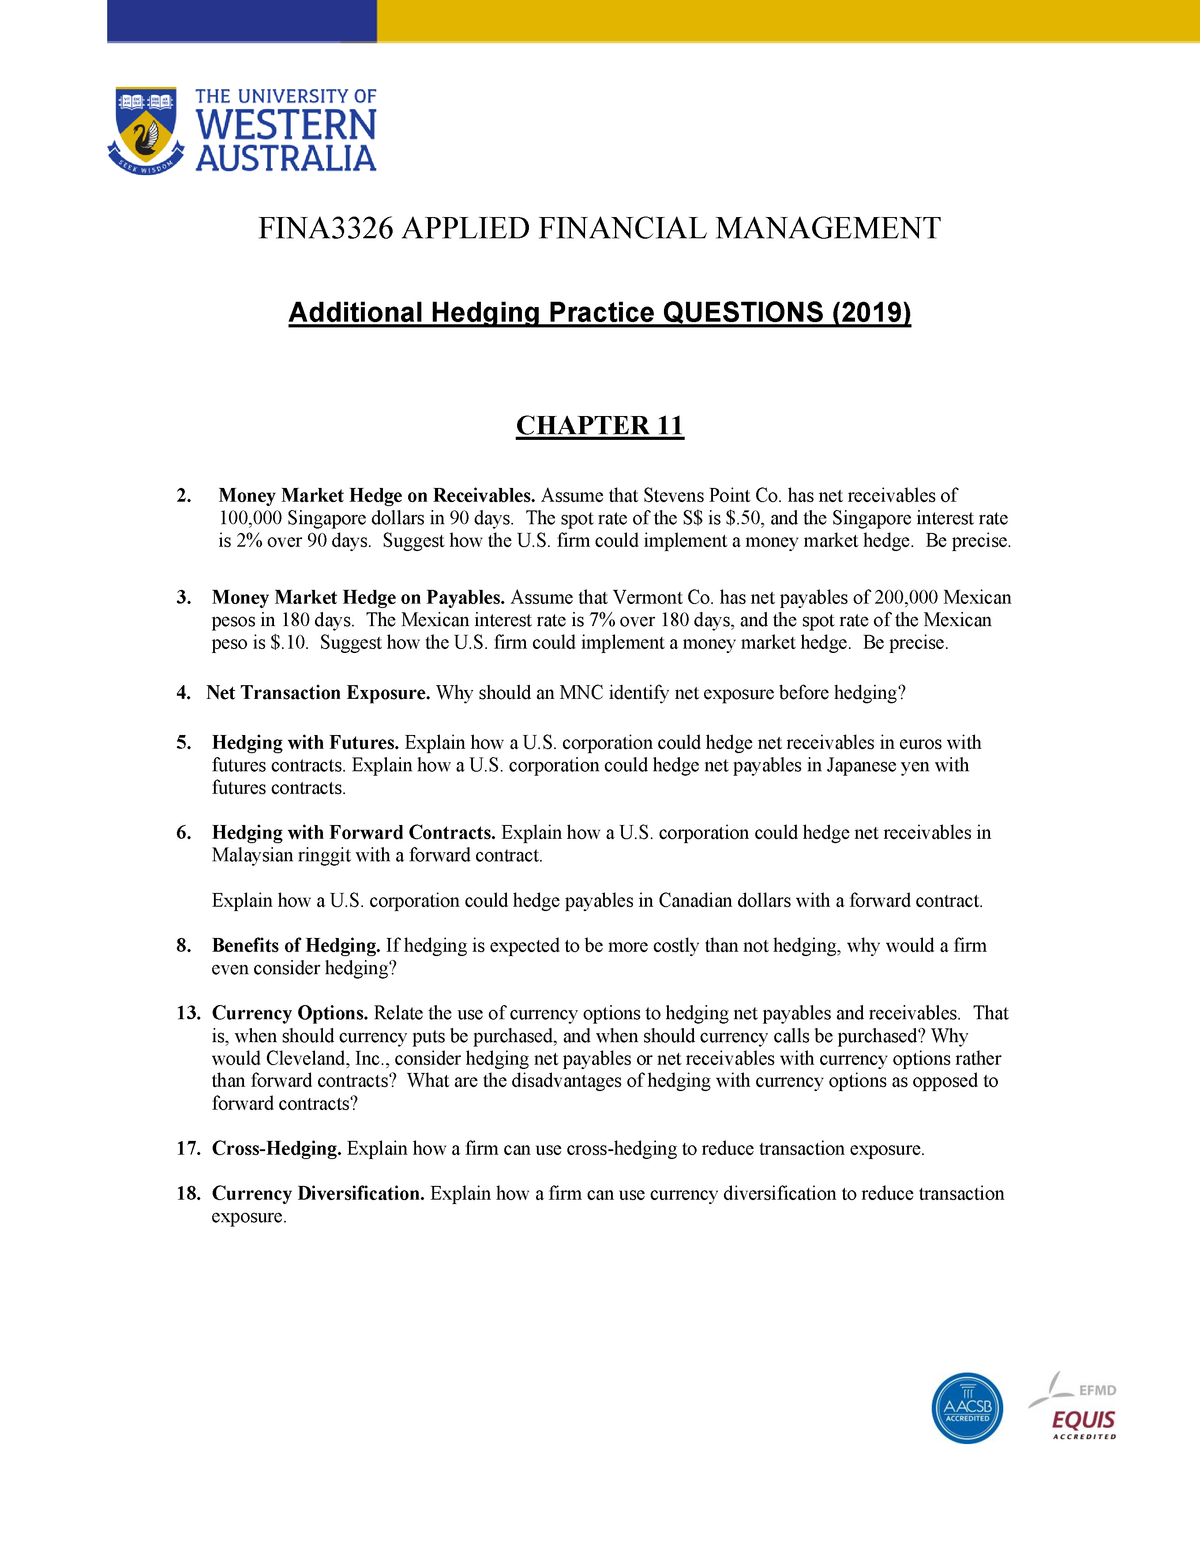 Additional Hedging Practice Questions 07 - FINA3326 - UWA - StuDocu